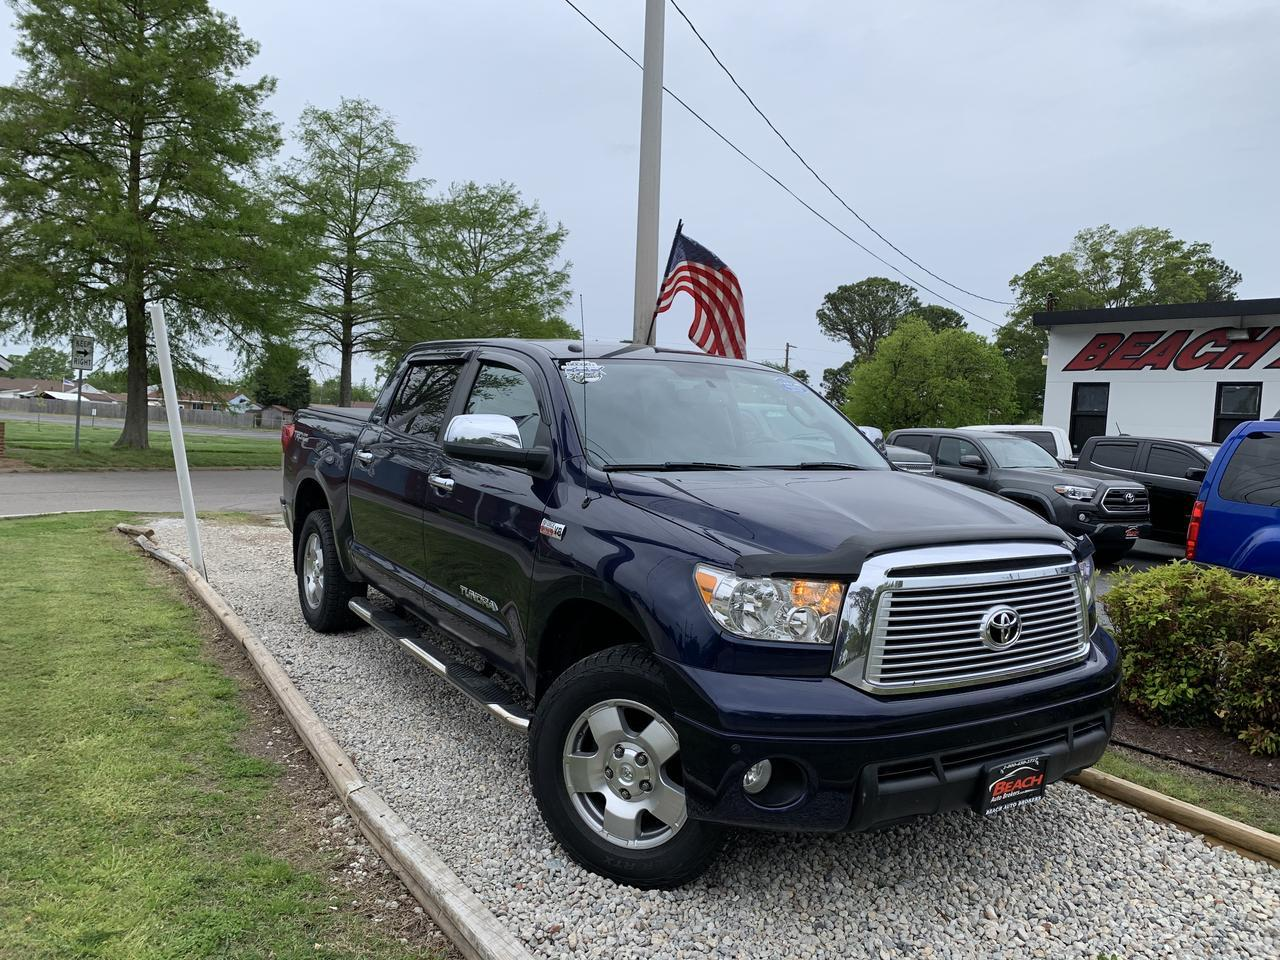 2012 TOYOTA TUNDRA LIMITED CREWMAX 4X4, WARRANTY, LEATHER, TRD OFF ROAD PKG,SUNROOF, HEATED SEATS, BACKUP CAM, 1 OWNER! Norfolk VA